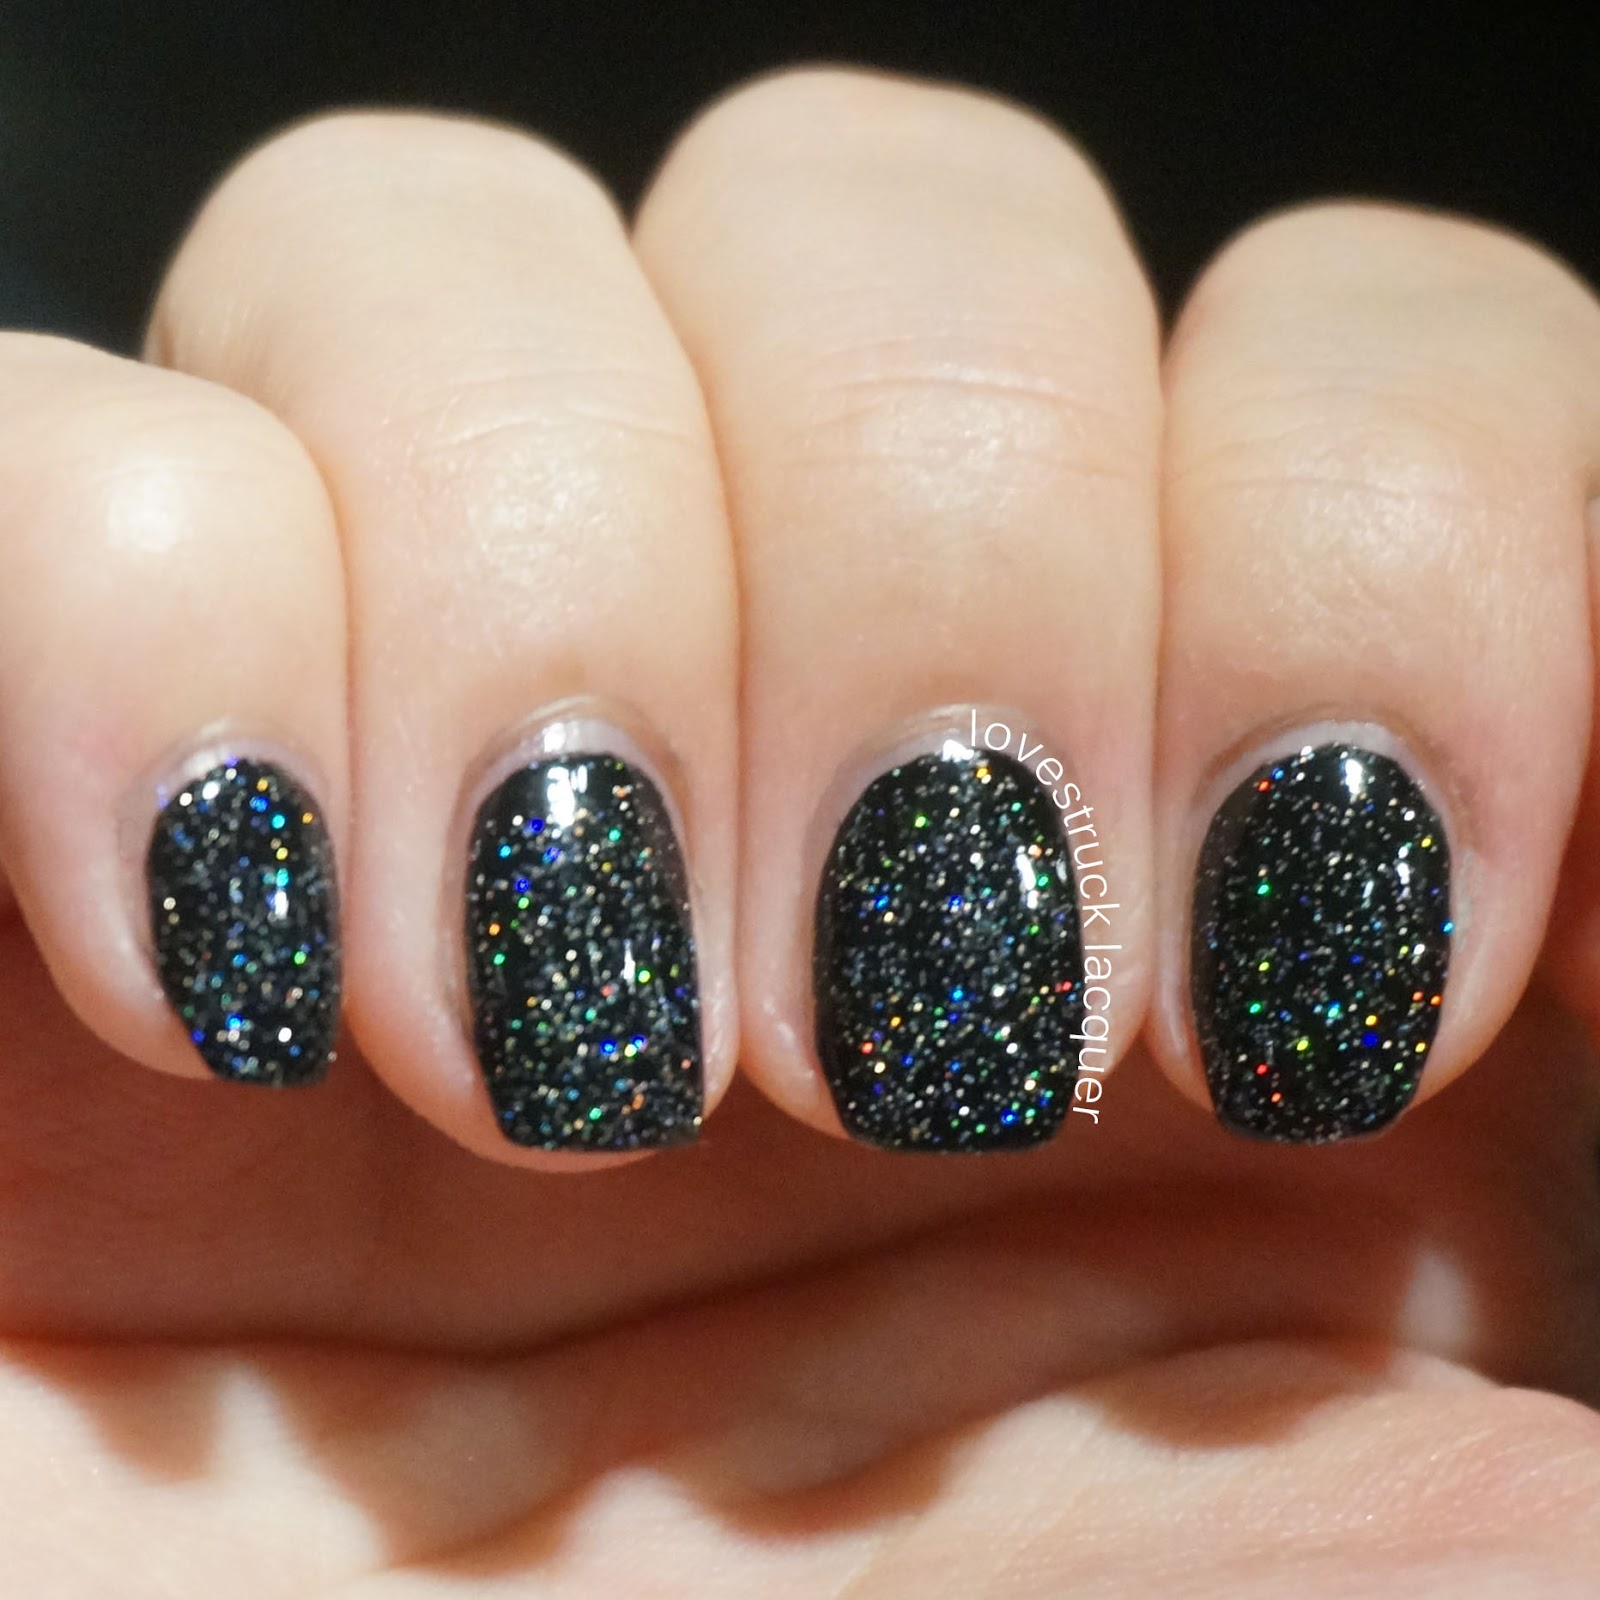 Lovestruck Lacquer: China Glaze Fairy Dust over Black